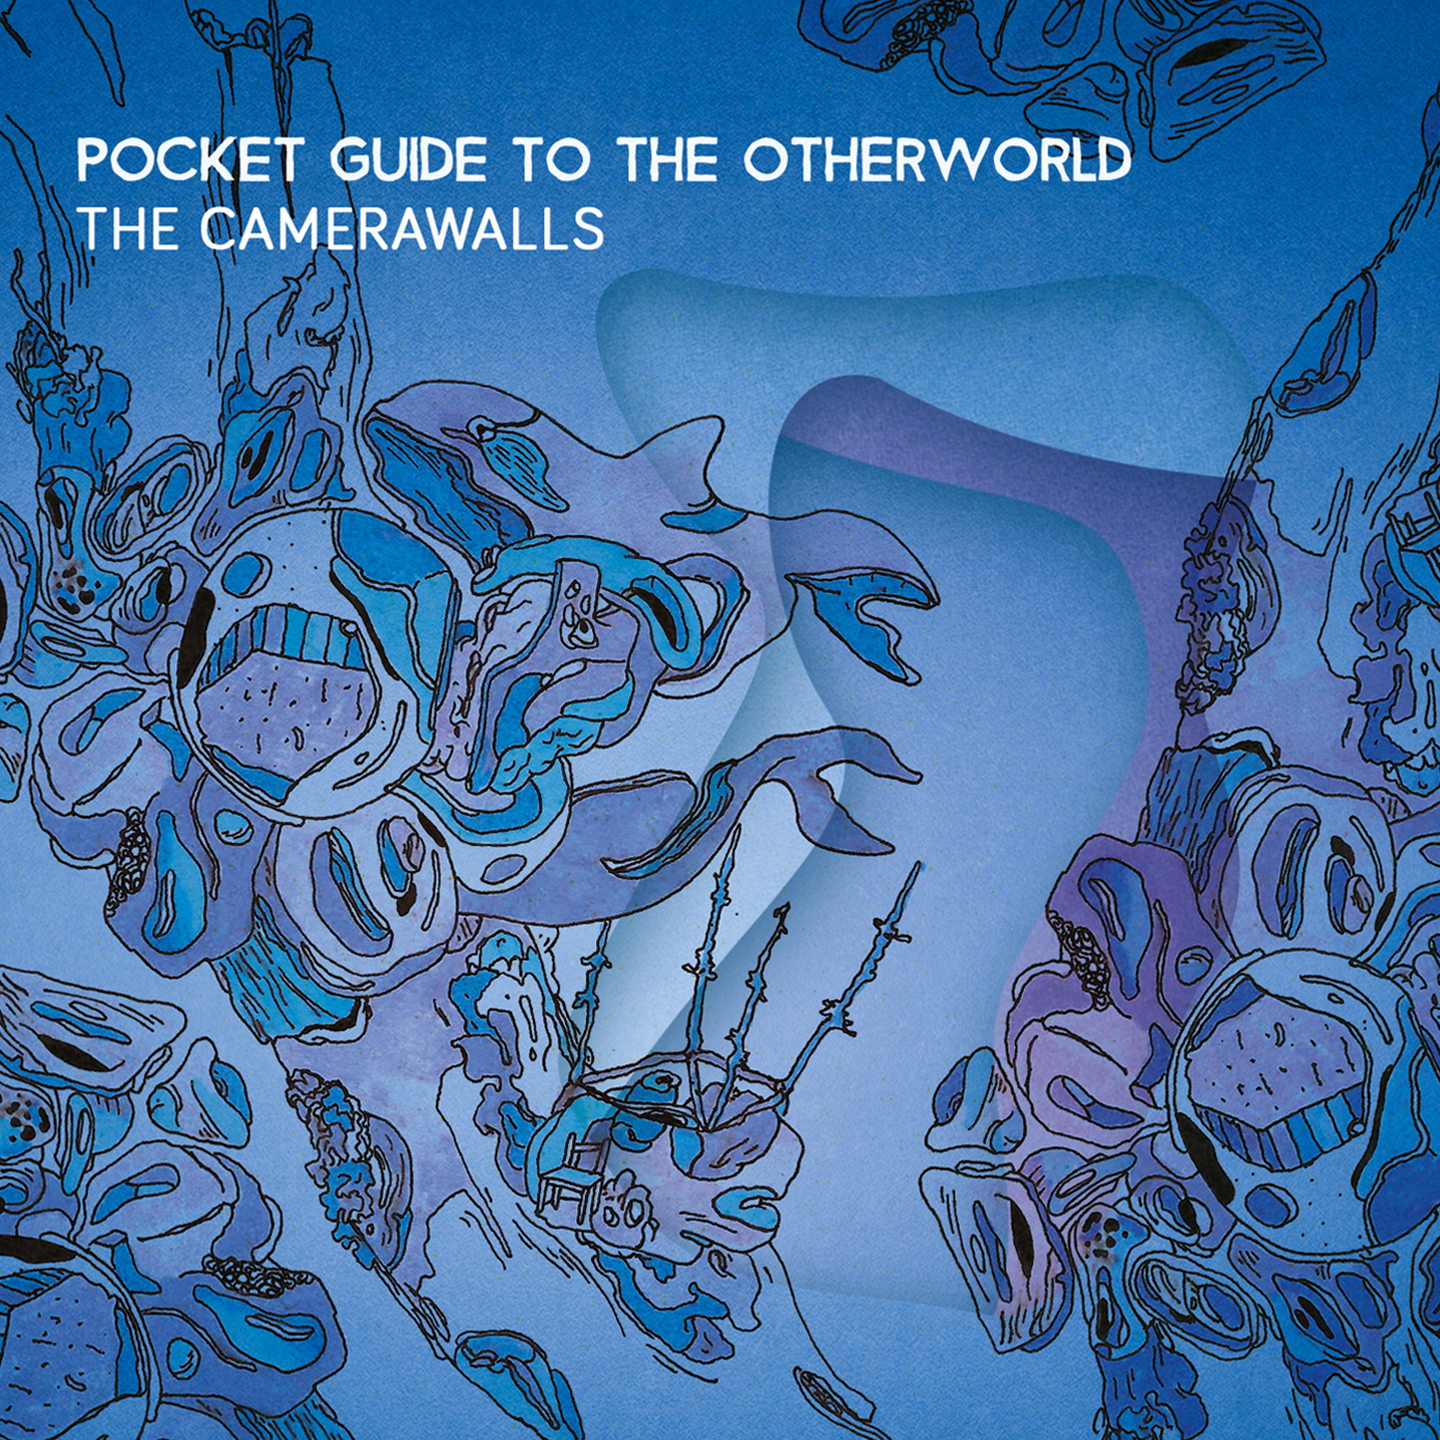 Pocket Guide To The Otherworld - The Camerawalls (2016 Remastered CD Album)